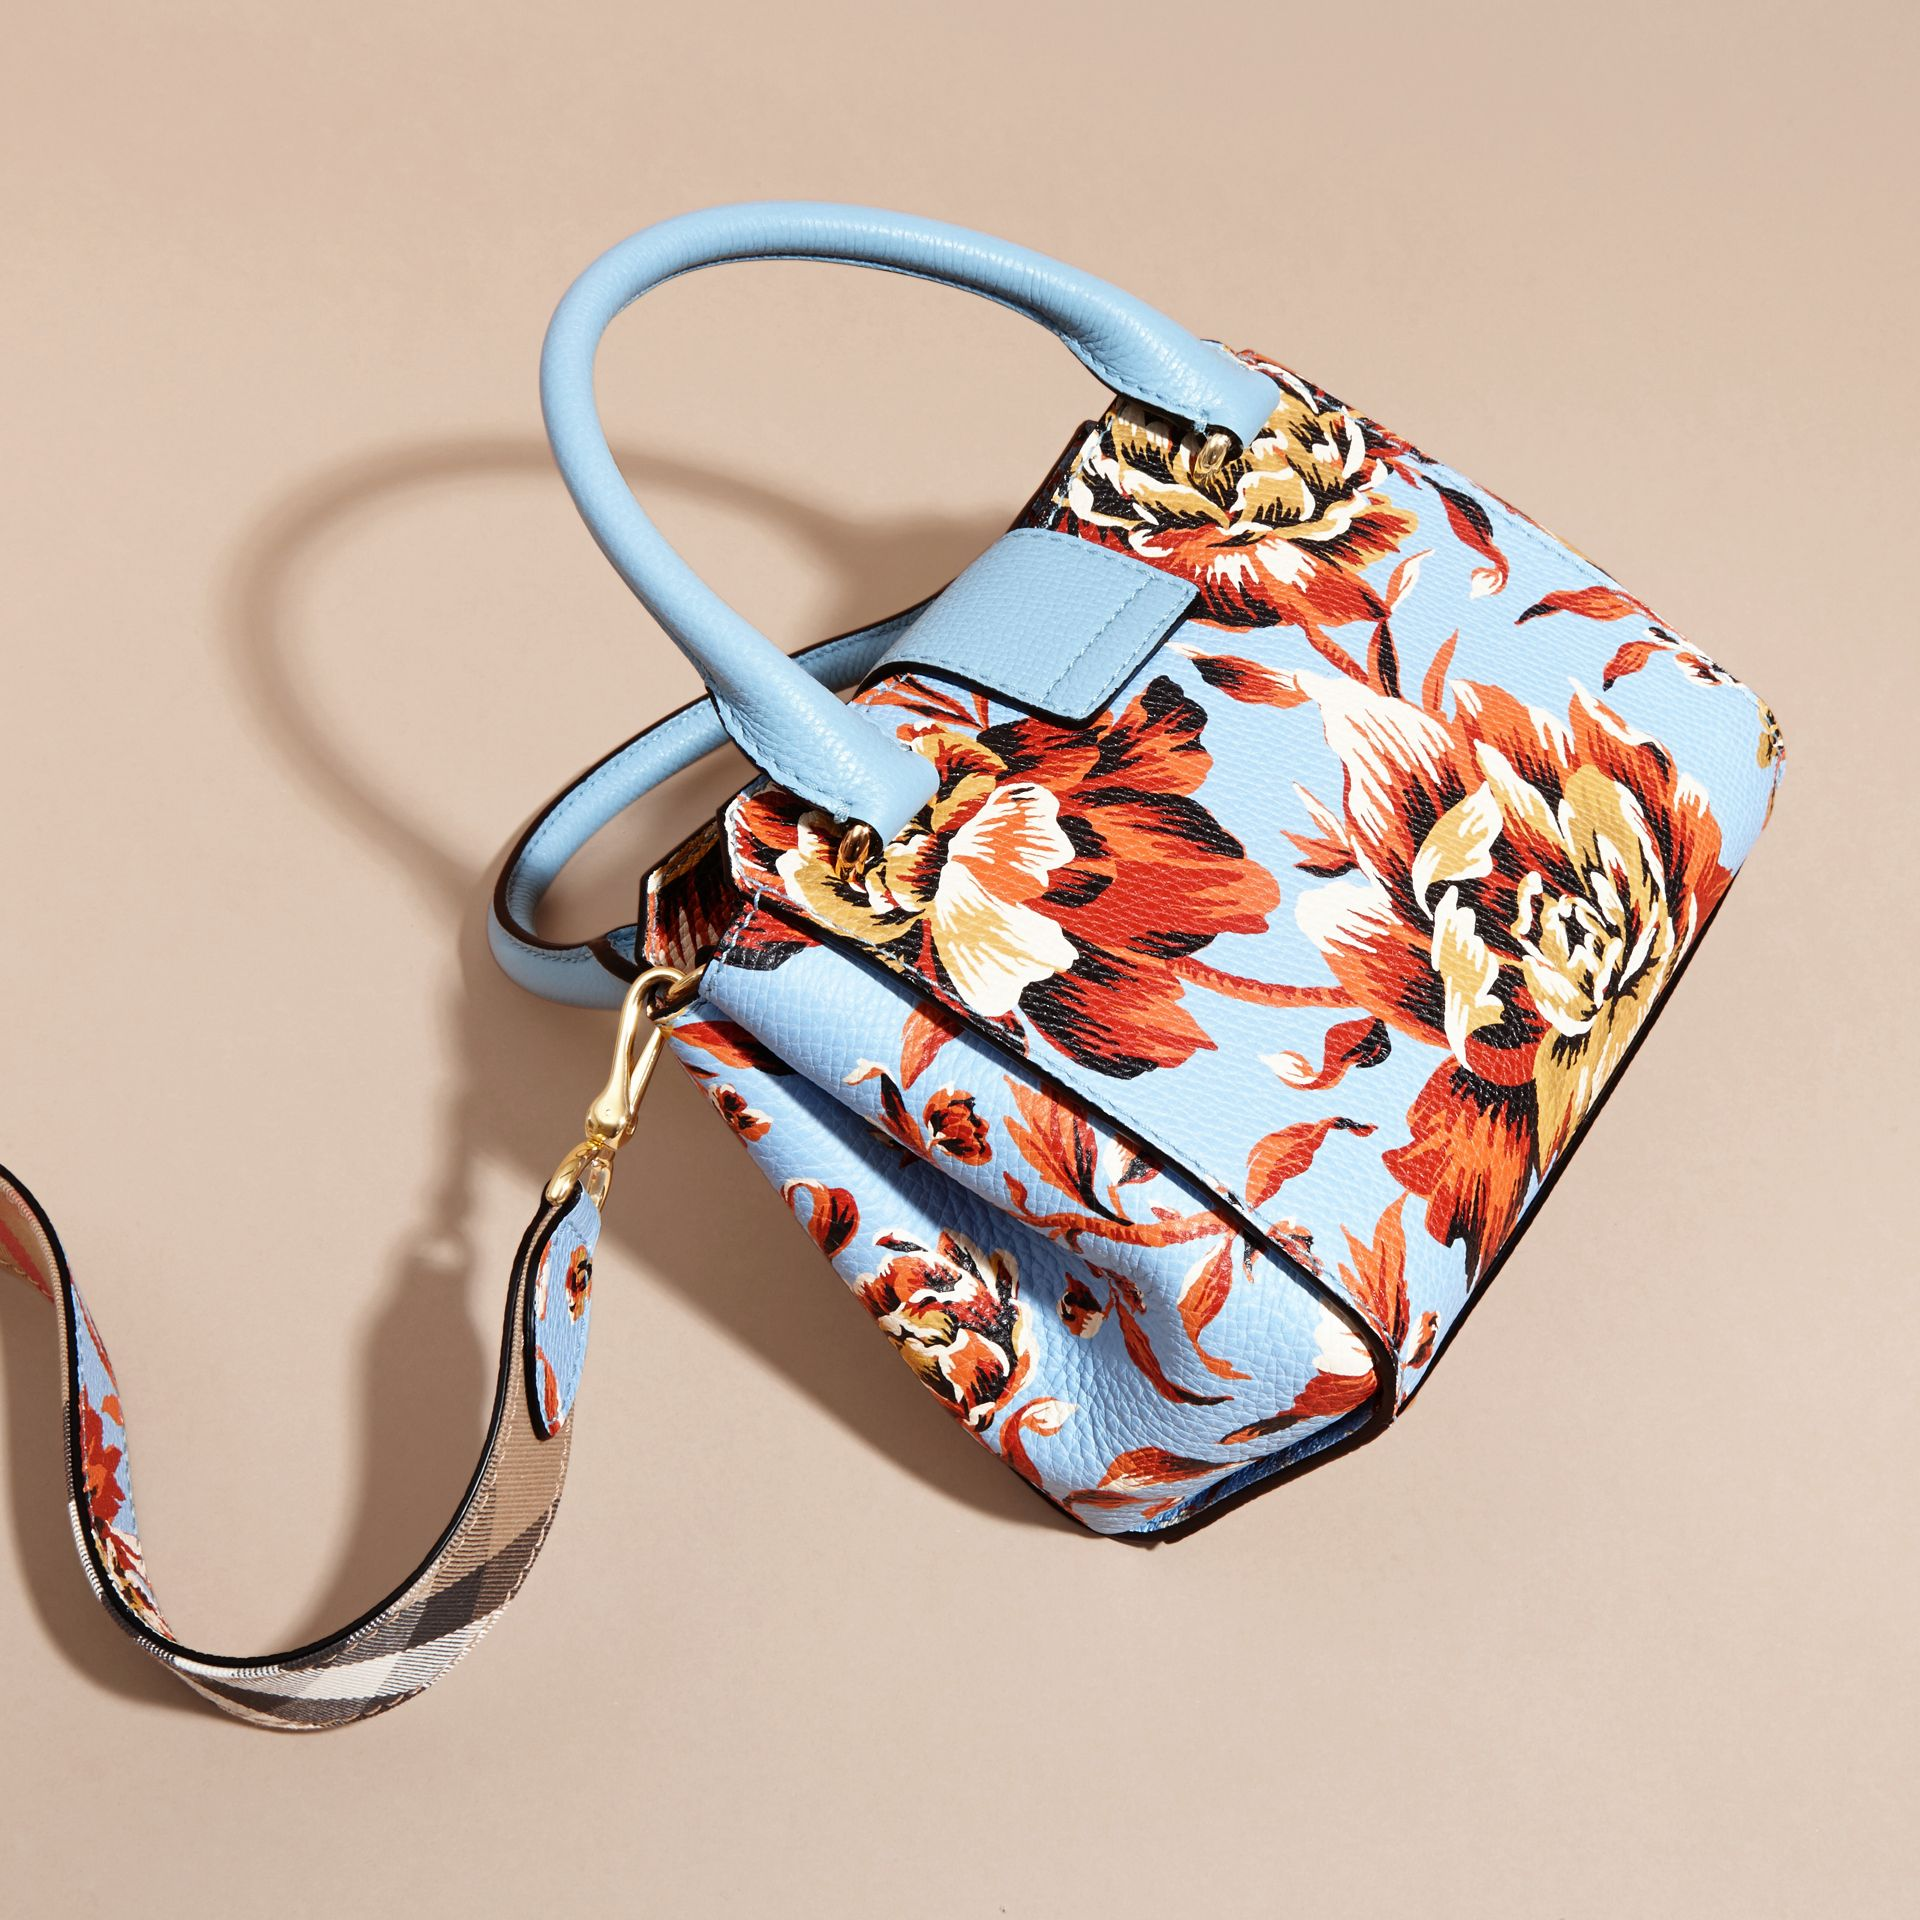 Pale blue/vibrant orange The Small Buckle Tote in Peony Rose Print Leather Pale Blue/vibrant Orange - gallery image 5